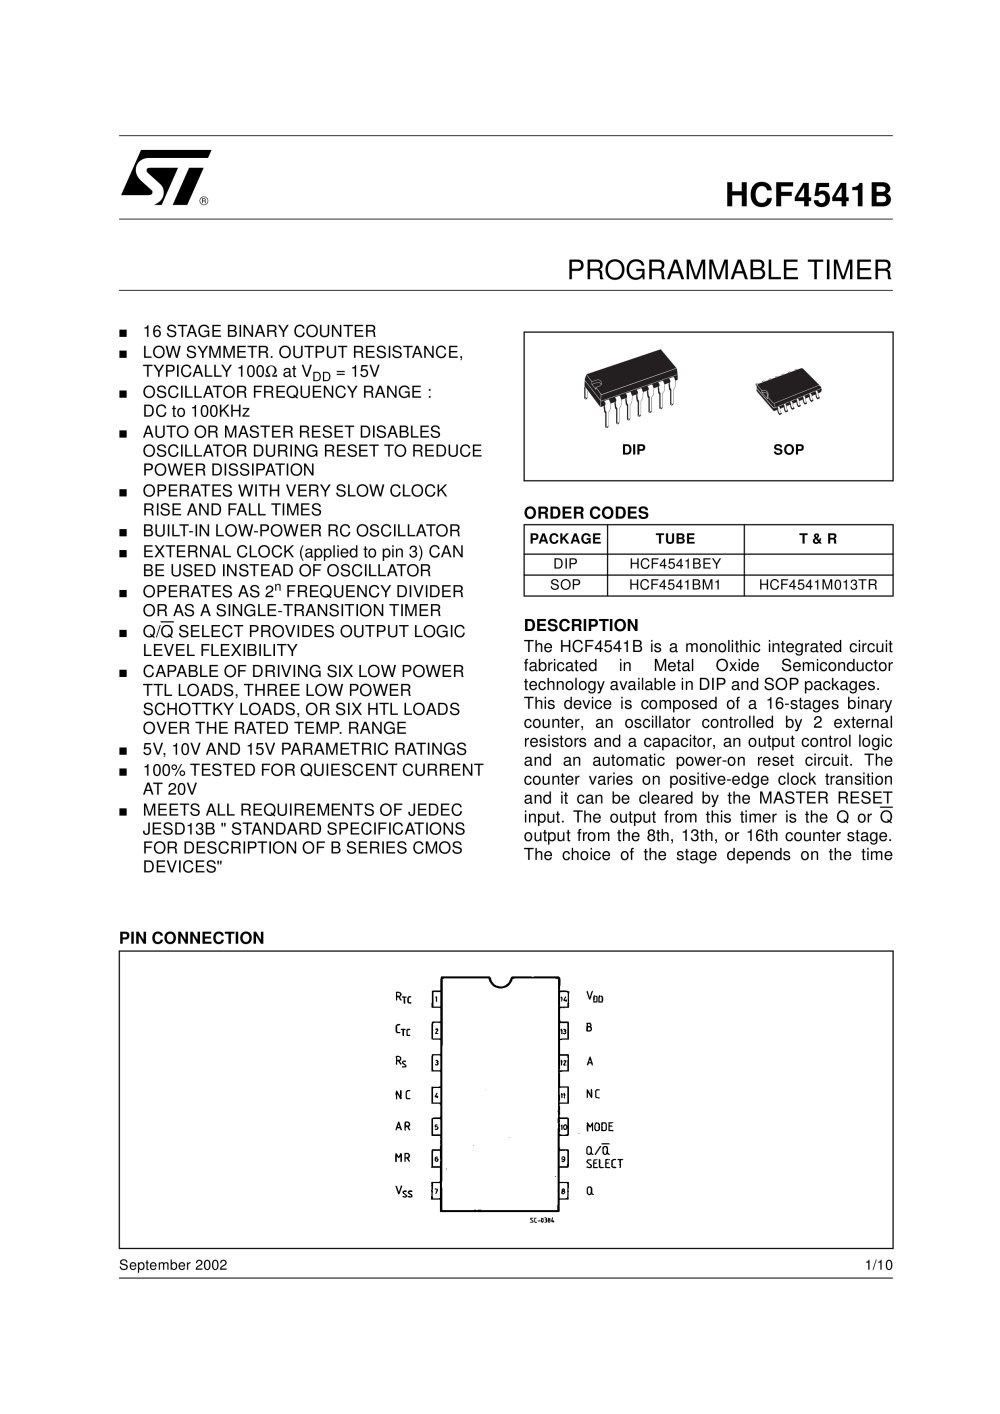 Hcf4541 Programmable Timer Stmicroelectronics Pdf Catalogs Amplifier Auto Off Circuit 1 10 Pages